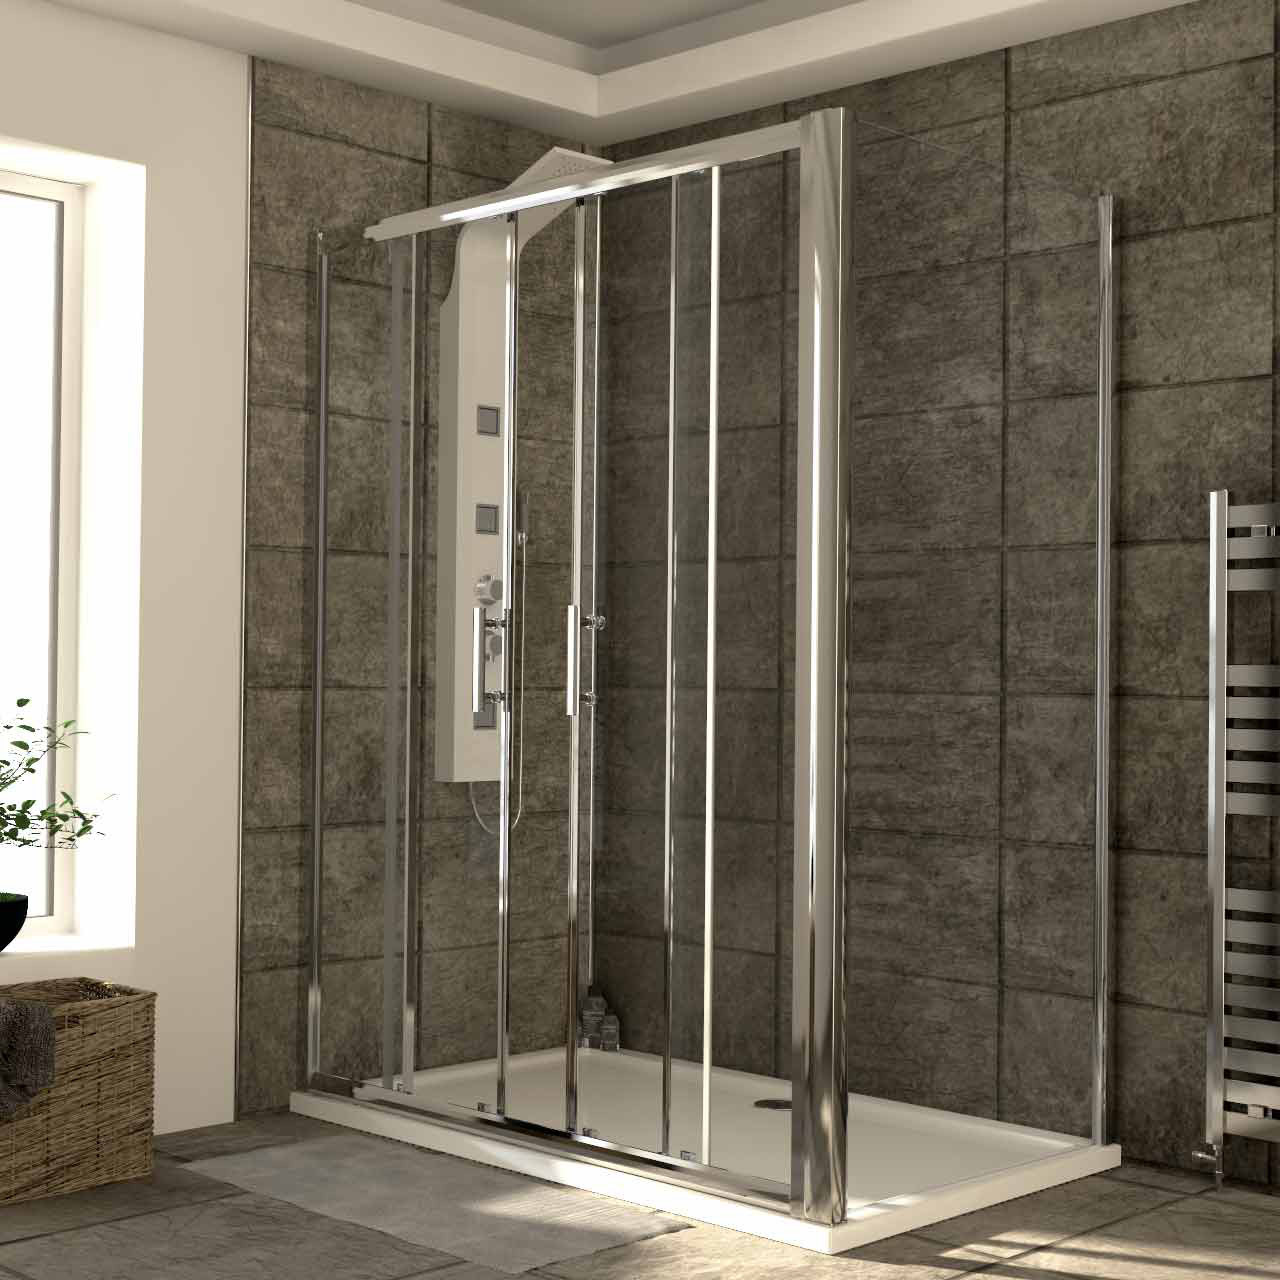 Series 6 1500mm x 900mm Double Sliding Door Shower Enclosure